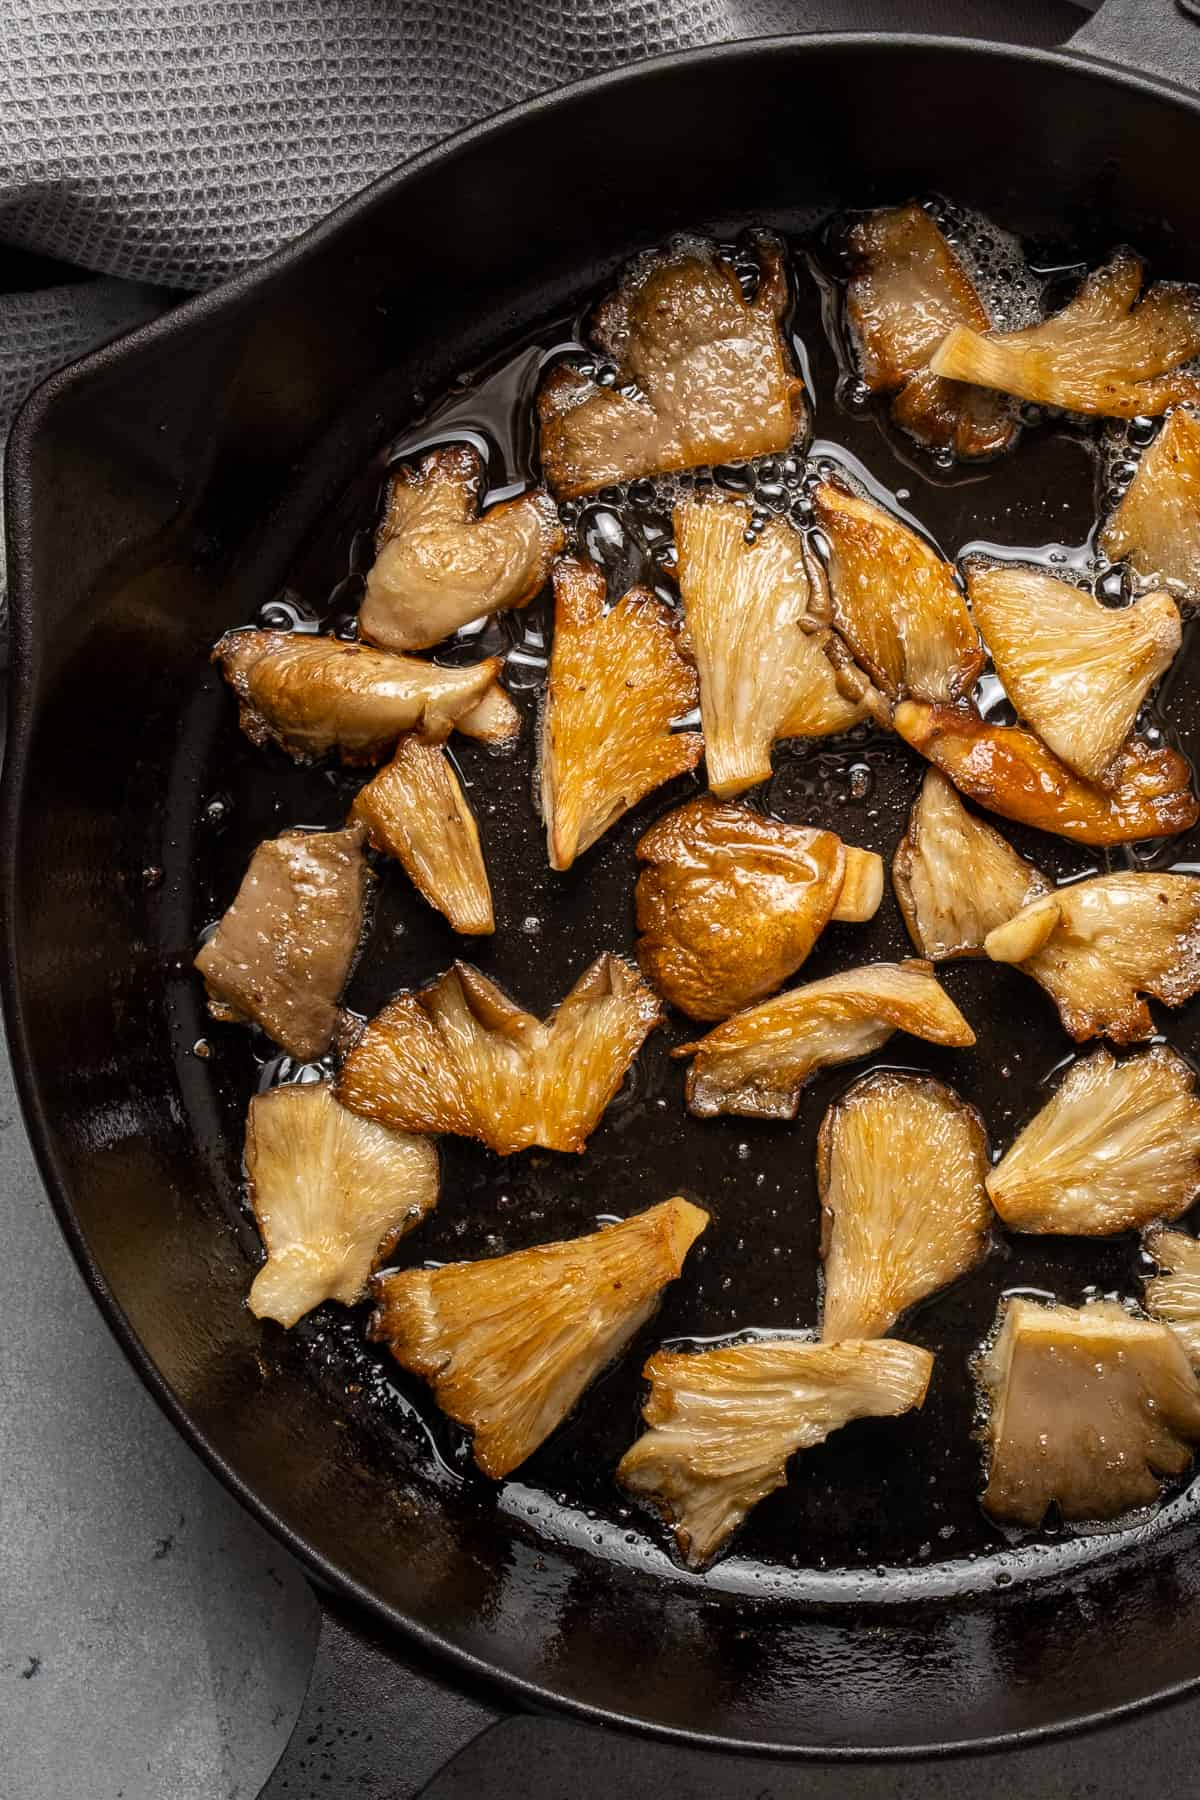 Oyster mushrooms cooking in a cast iron skillet.